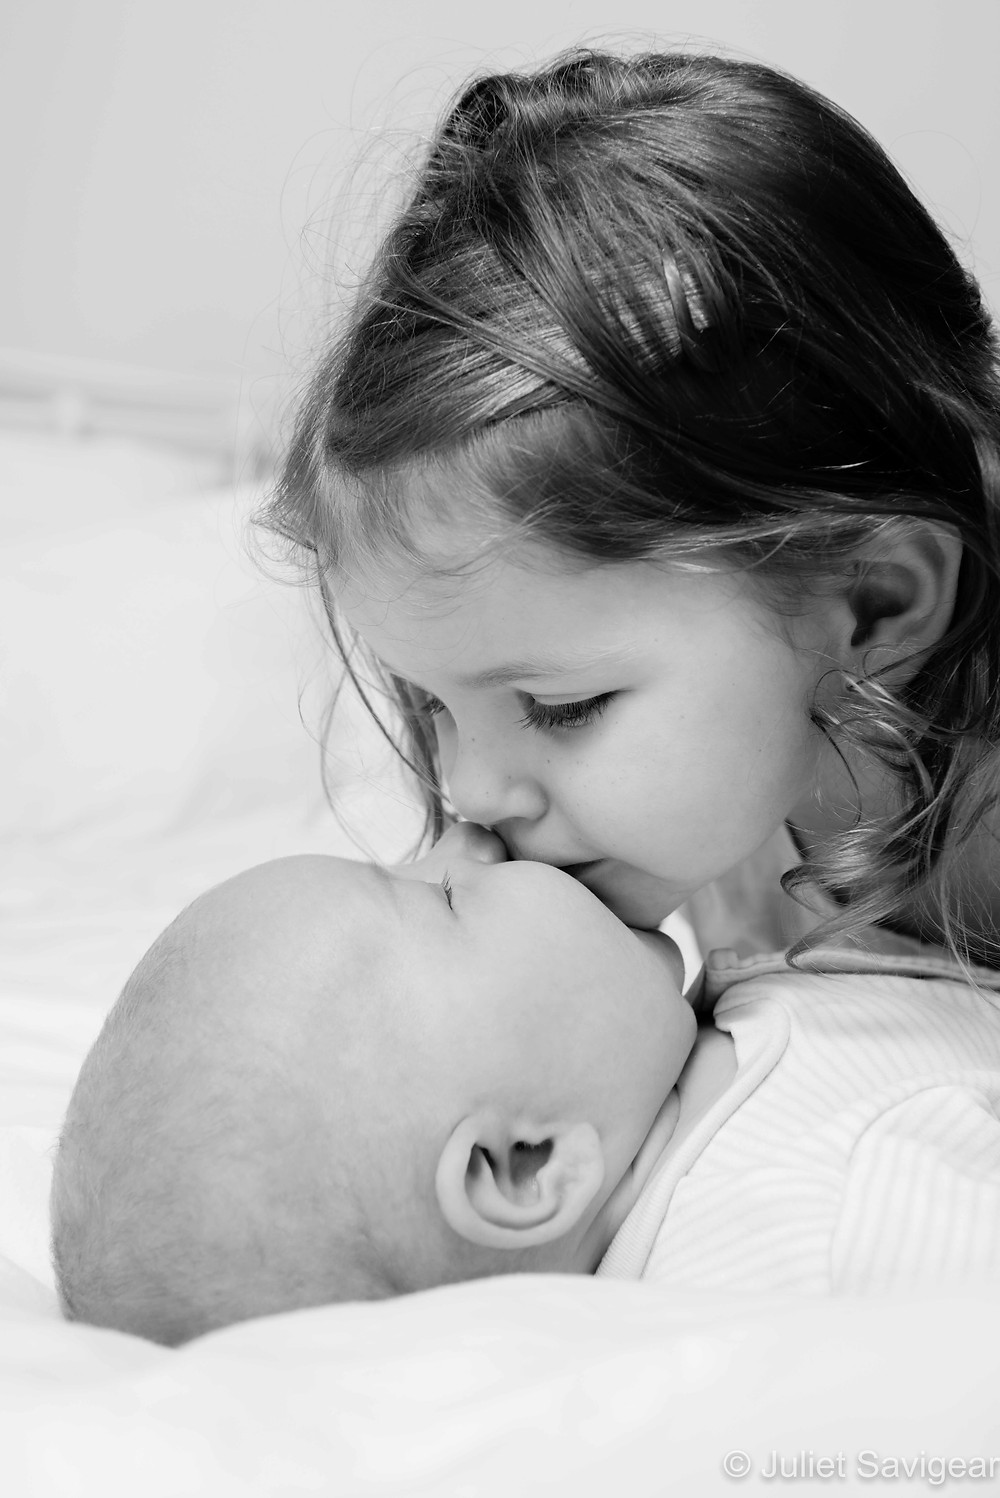 A big kiss for my baby brother